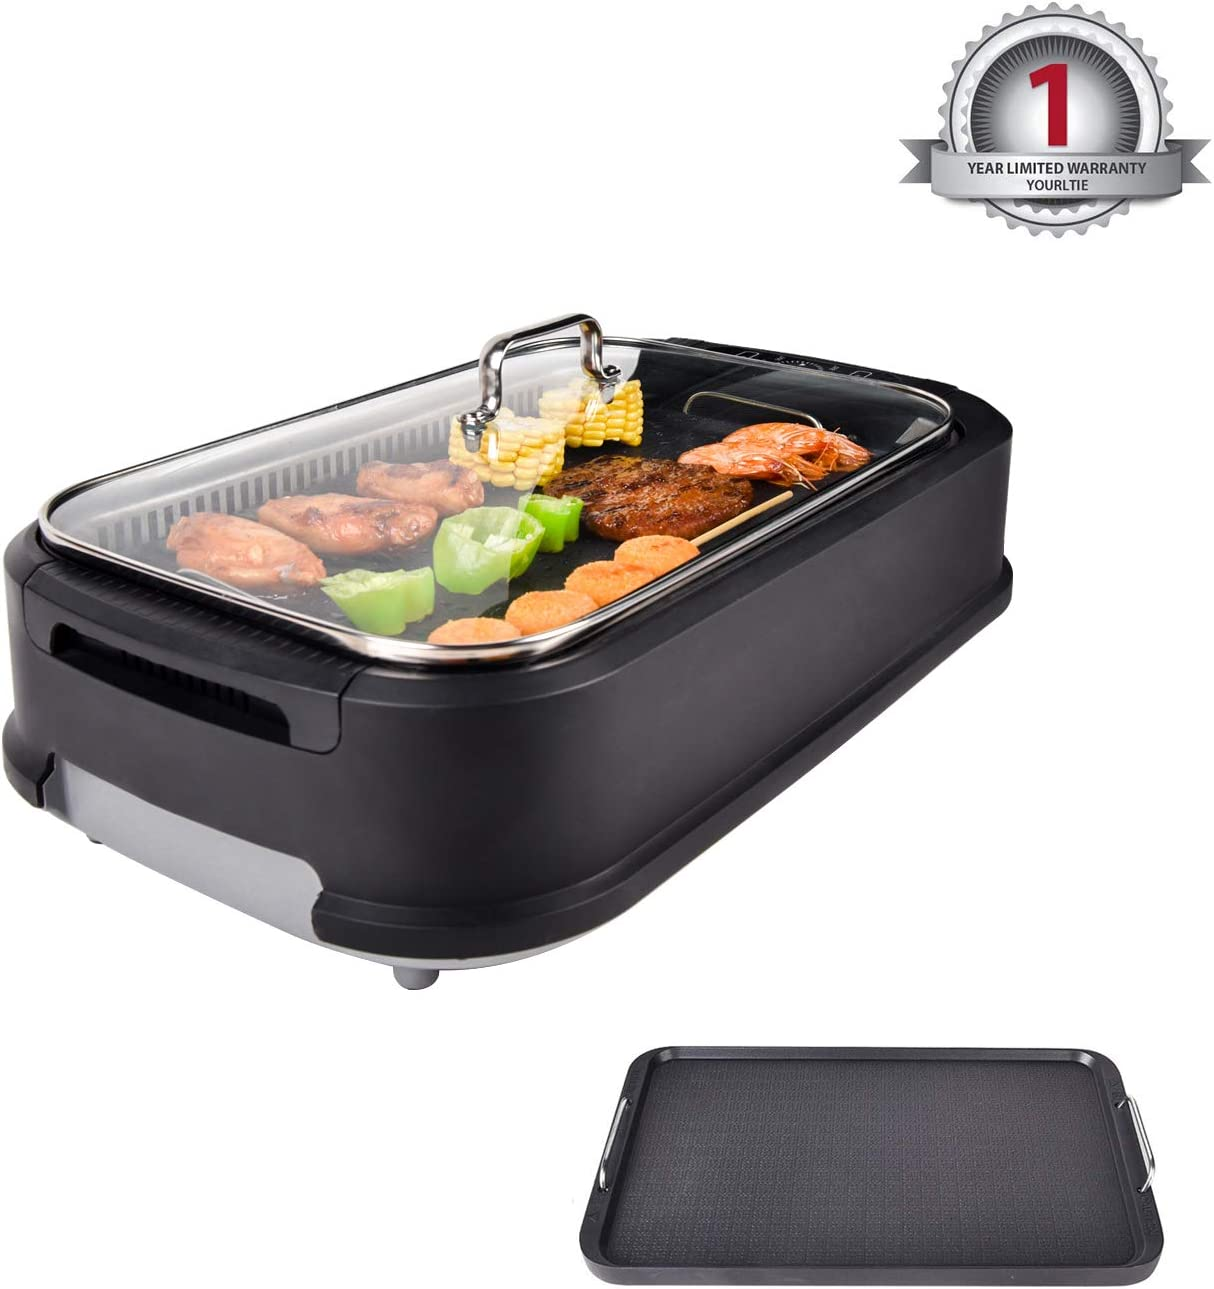 YOURLITE Electric Smokeless Grill with Tempered Glass Lid, Indoor BBQ Grilling and Searing with Grill Grate and Griddle Plate